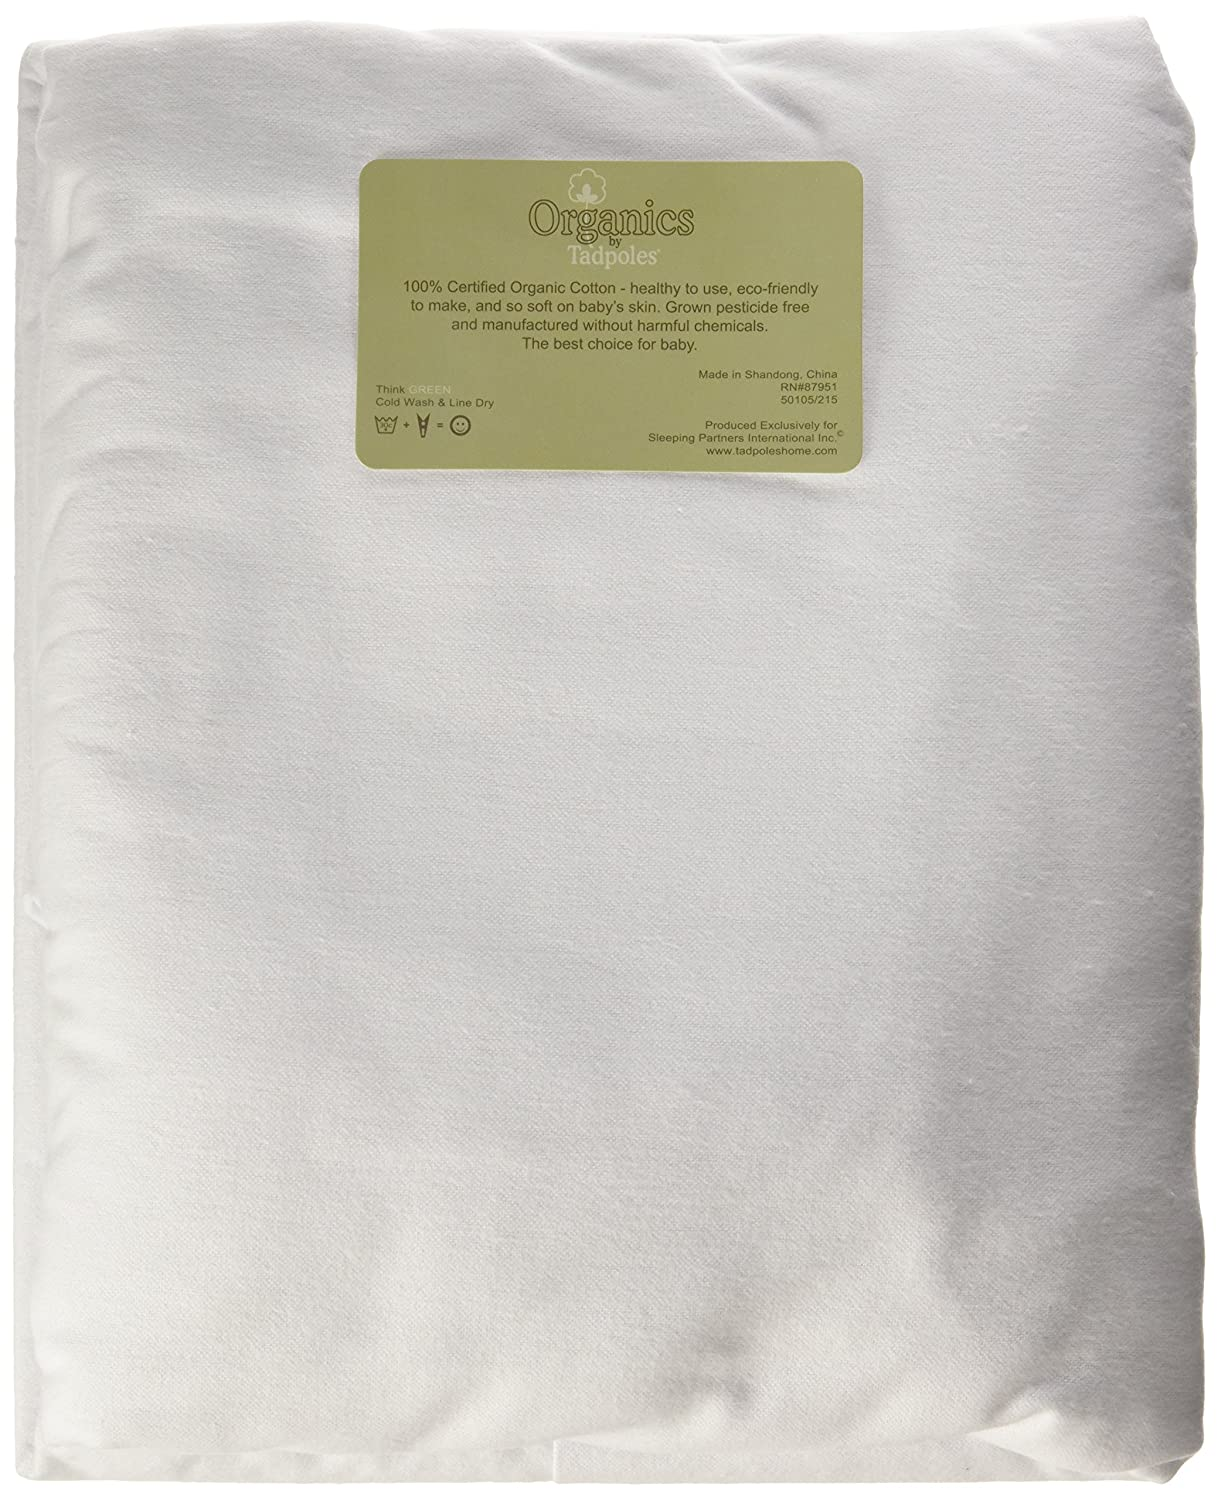 Tadpoles Organics Set of 2 Flannel Fitted Crib Sheets Natural